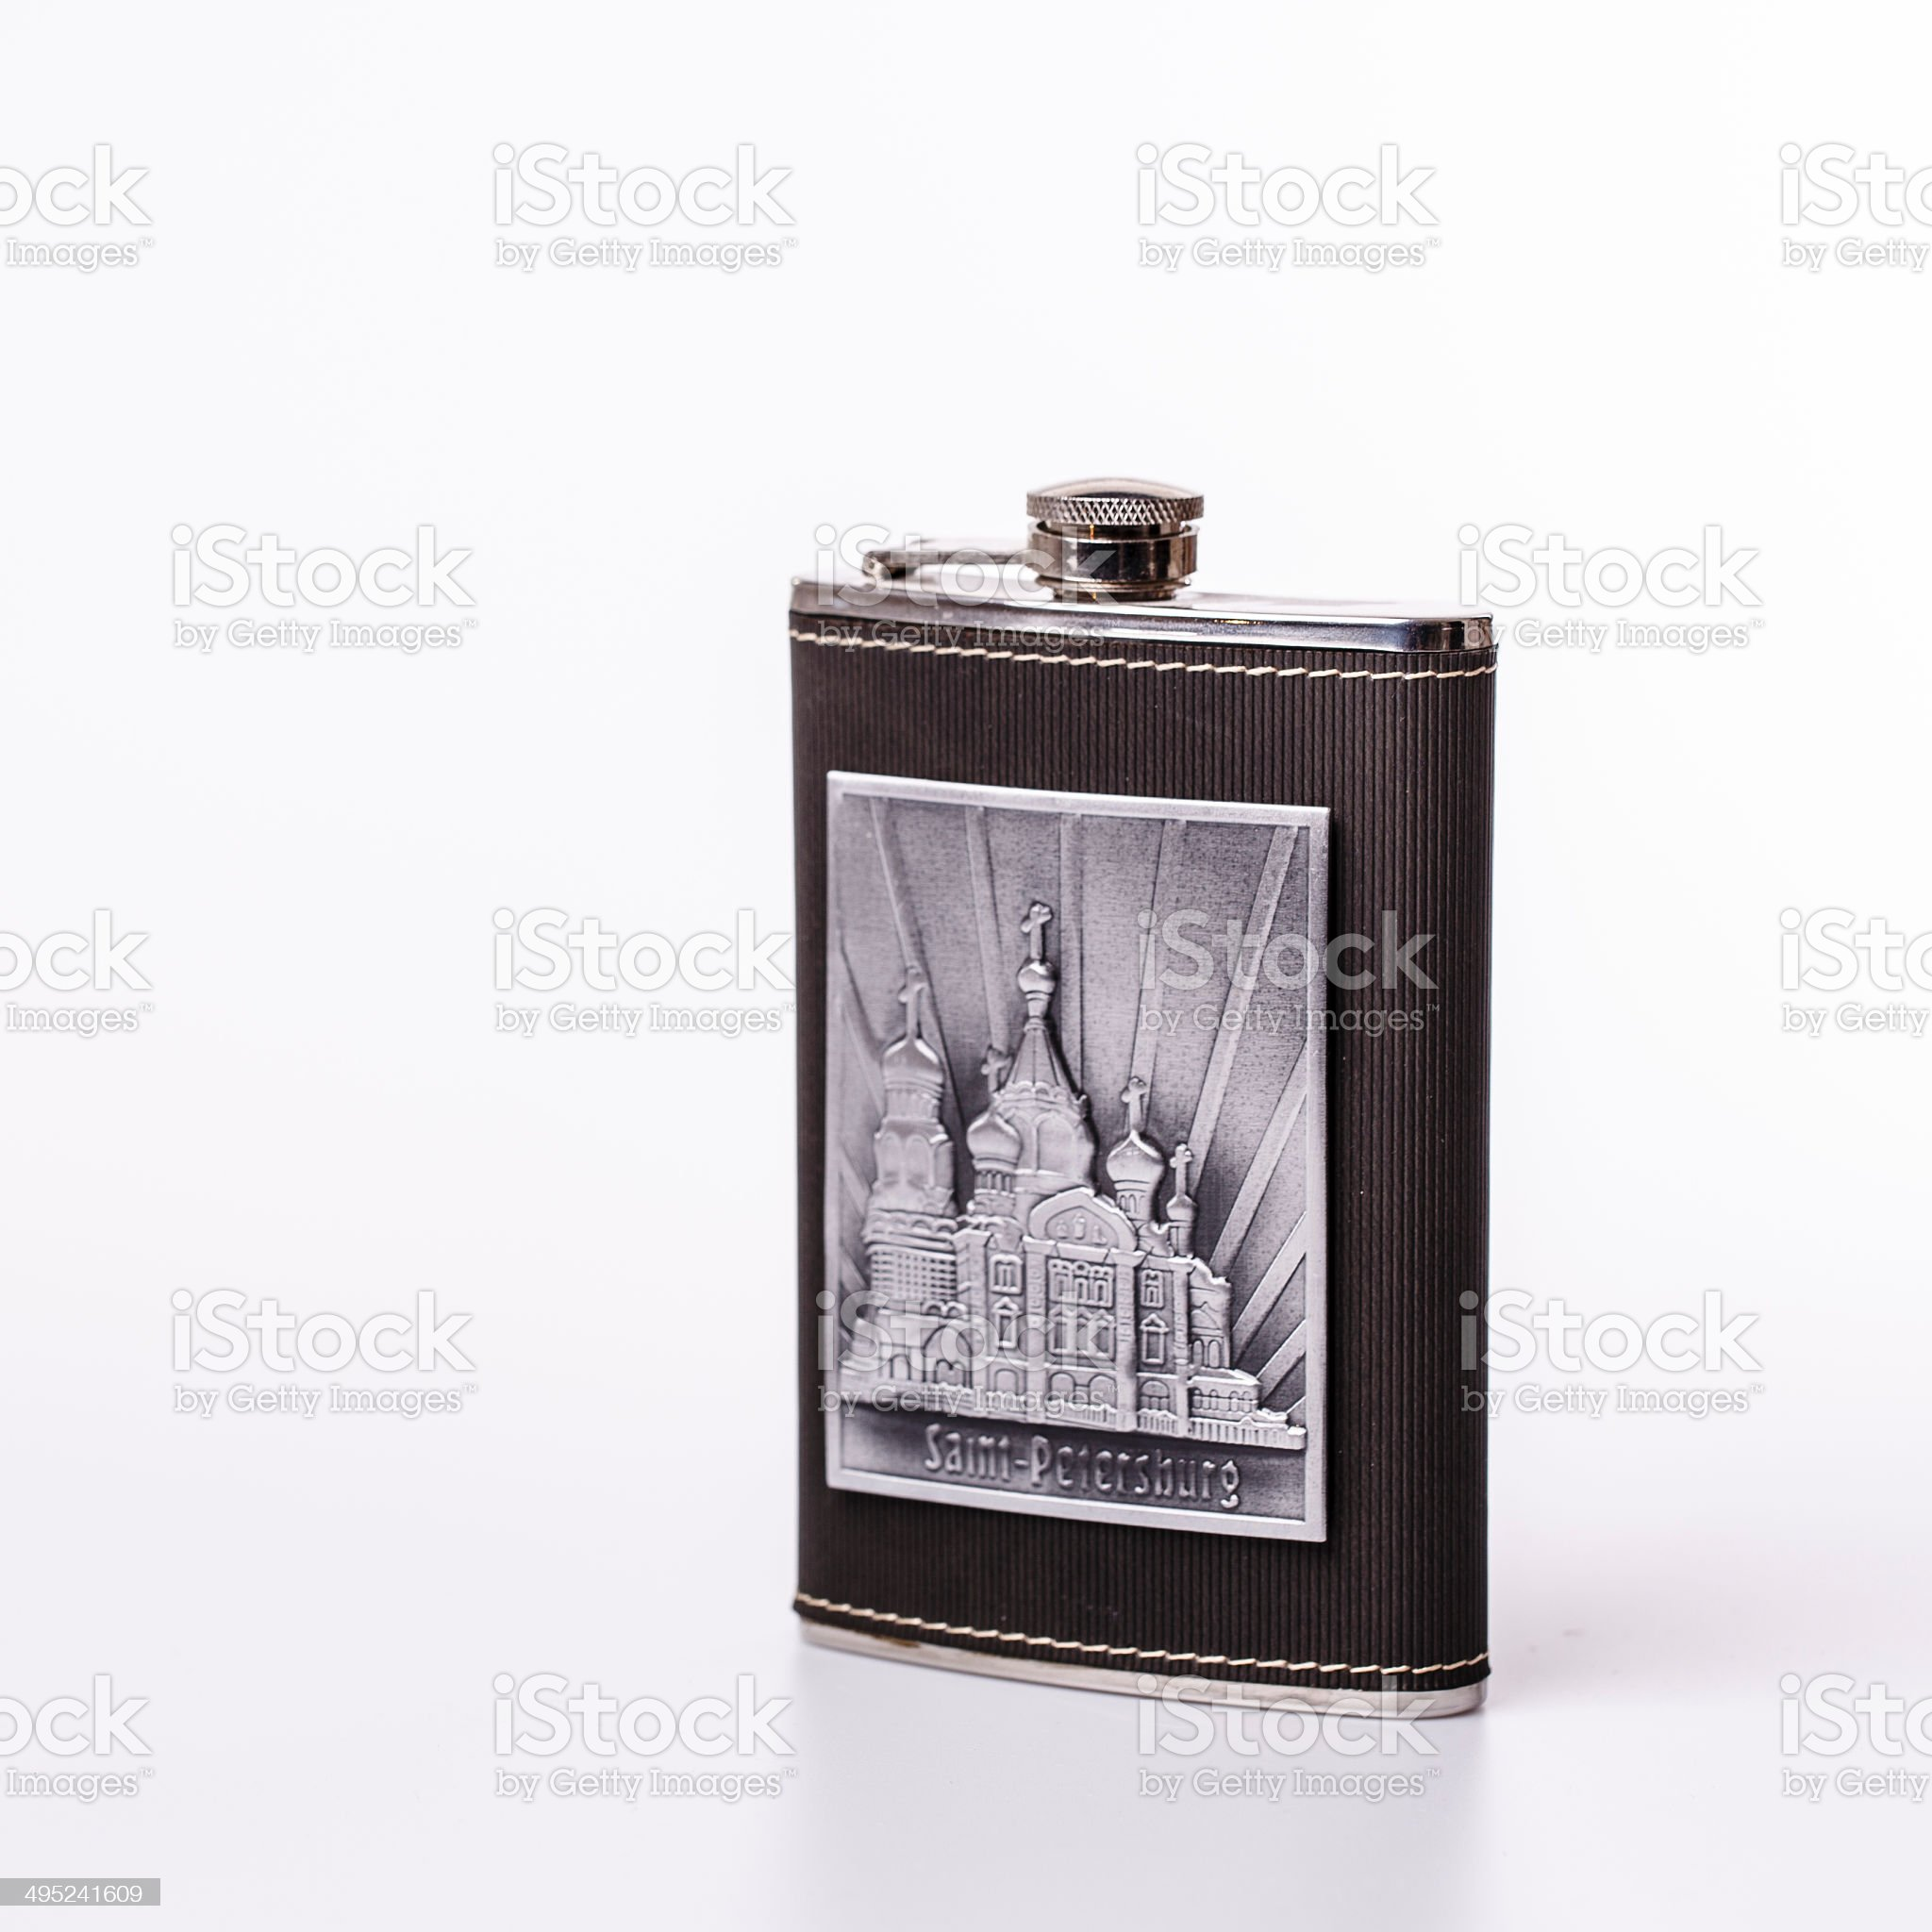 Stainless hip flask isolated on white background royalty-free stock photo